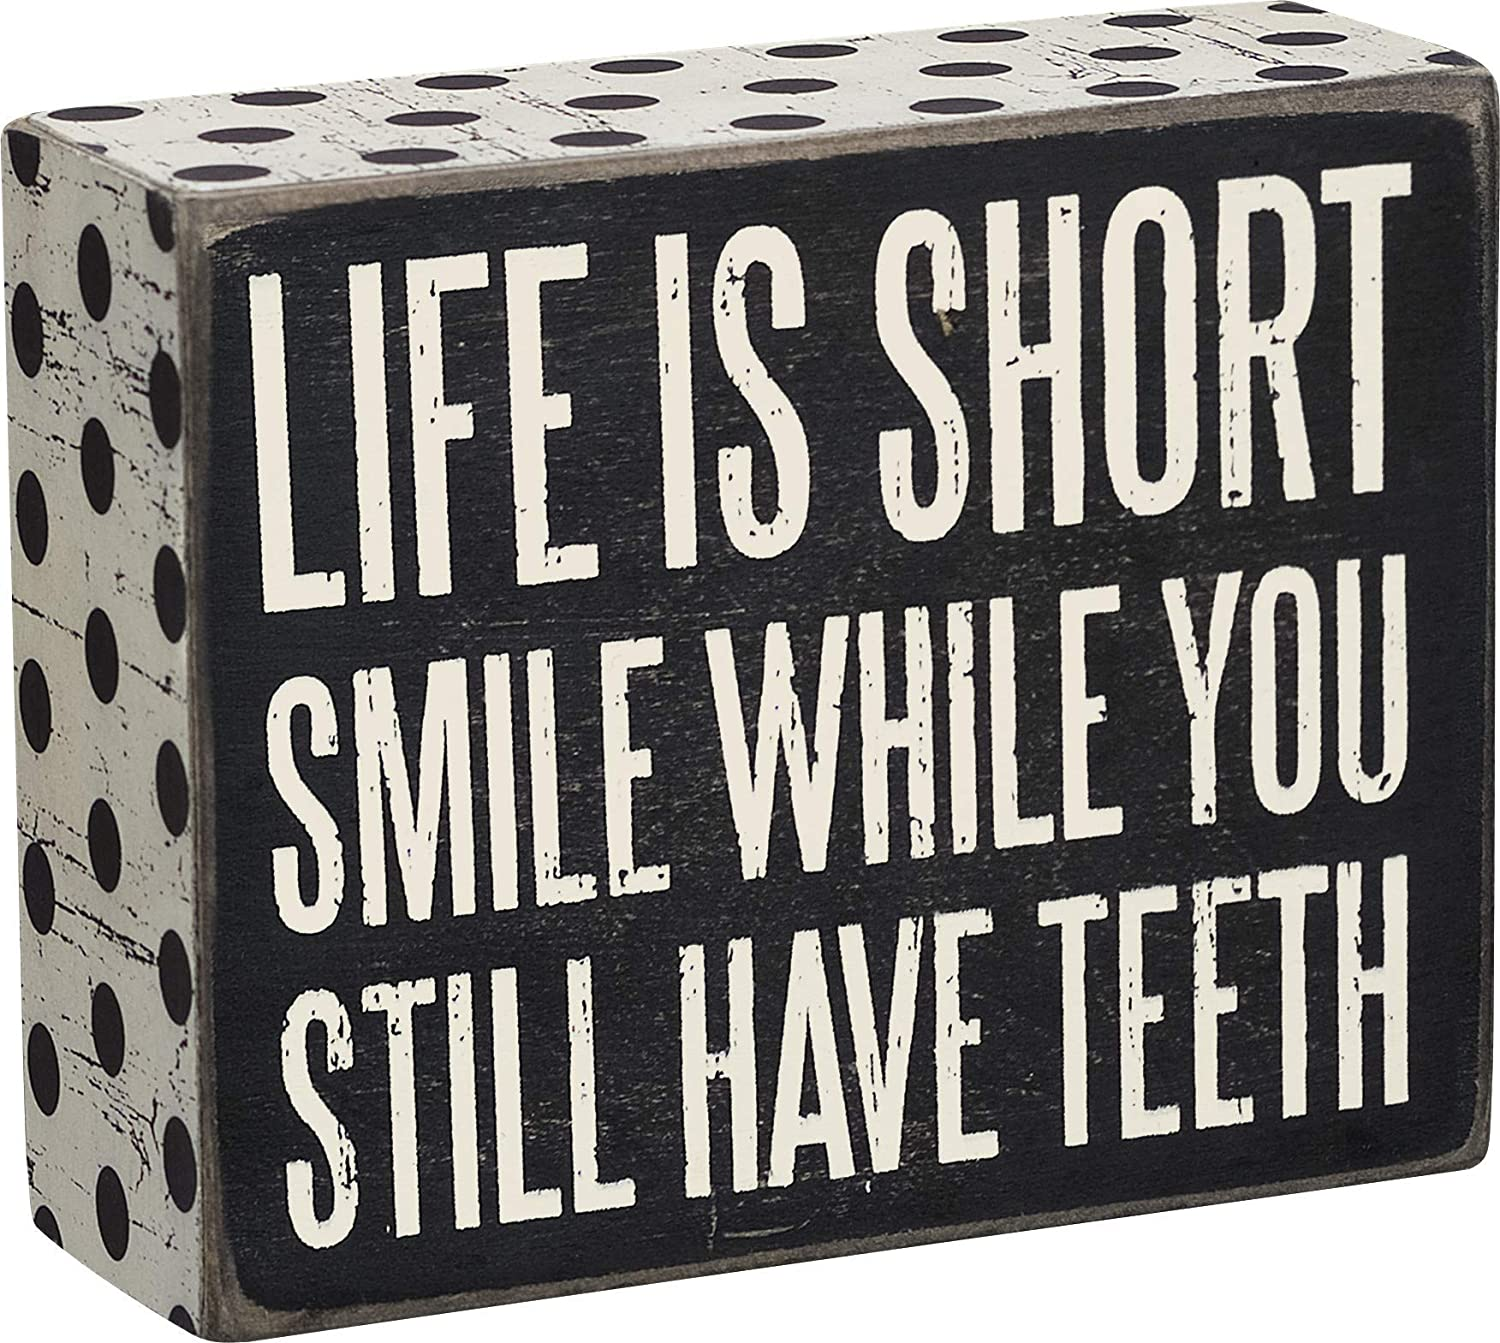 "Primitives by Kathy 21238 Polka Dot Trimmed Box Sign, 4"" x 5"", Life is Short"